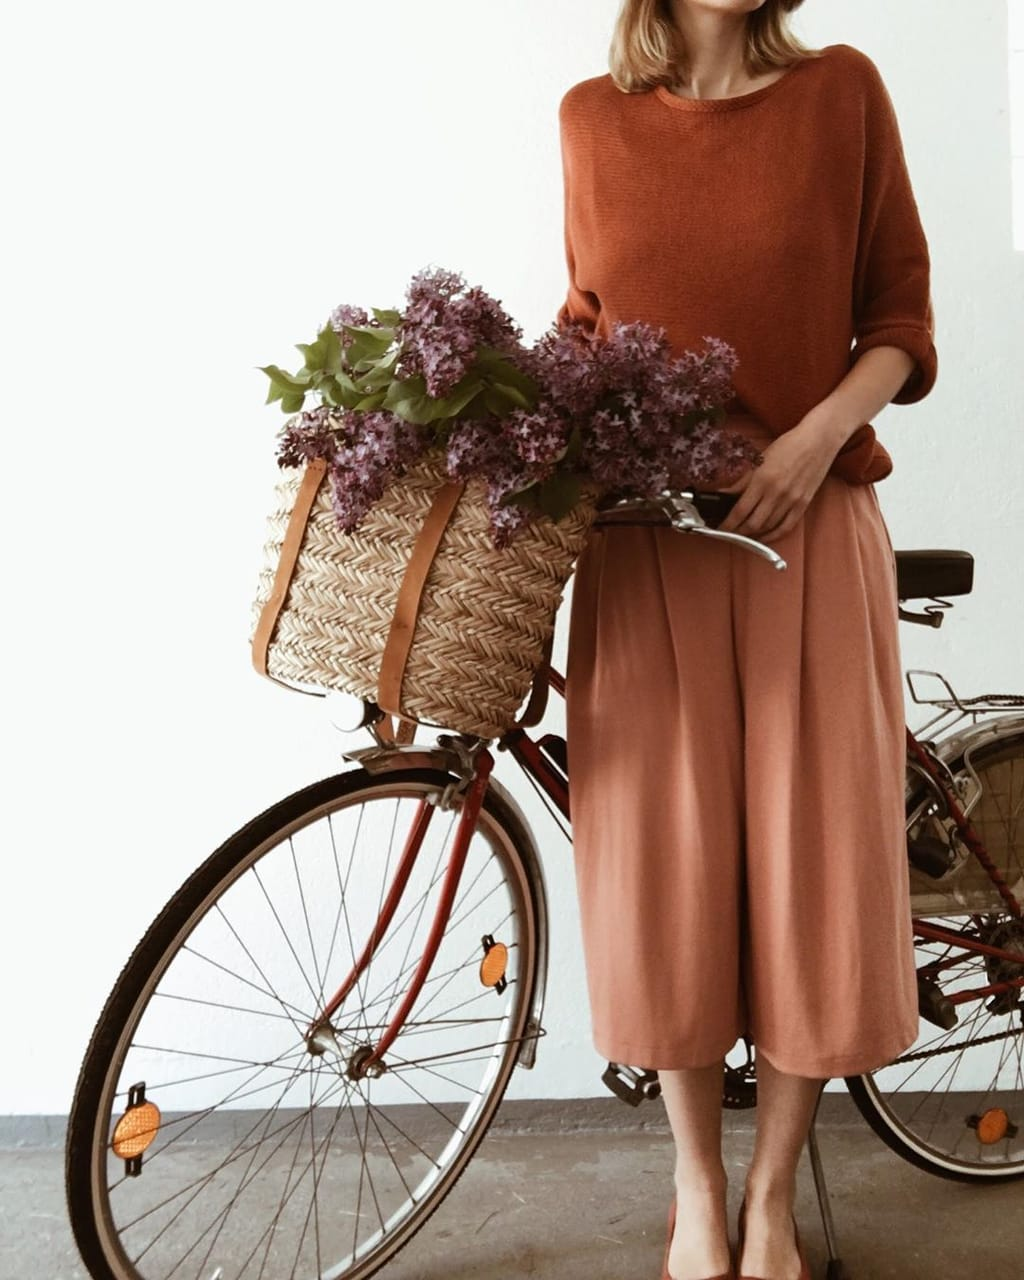 vintage, flowers, beautiful and dress